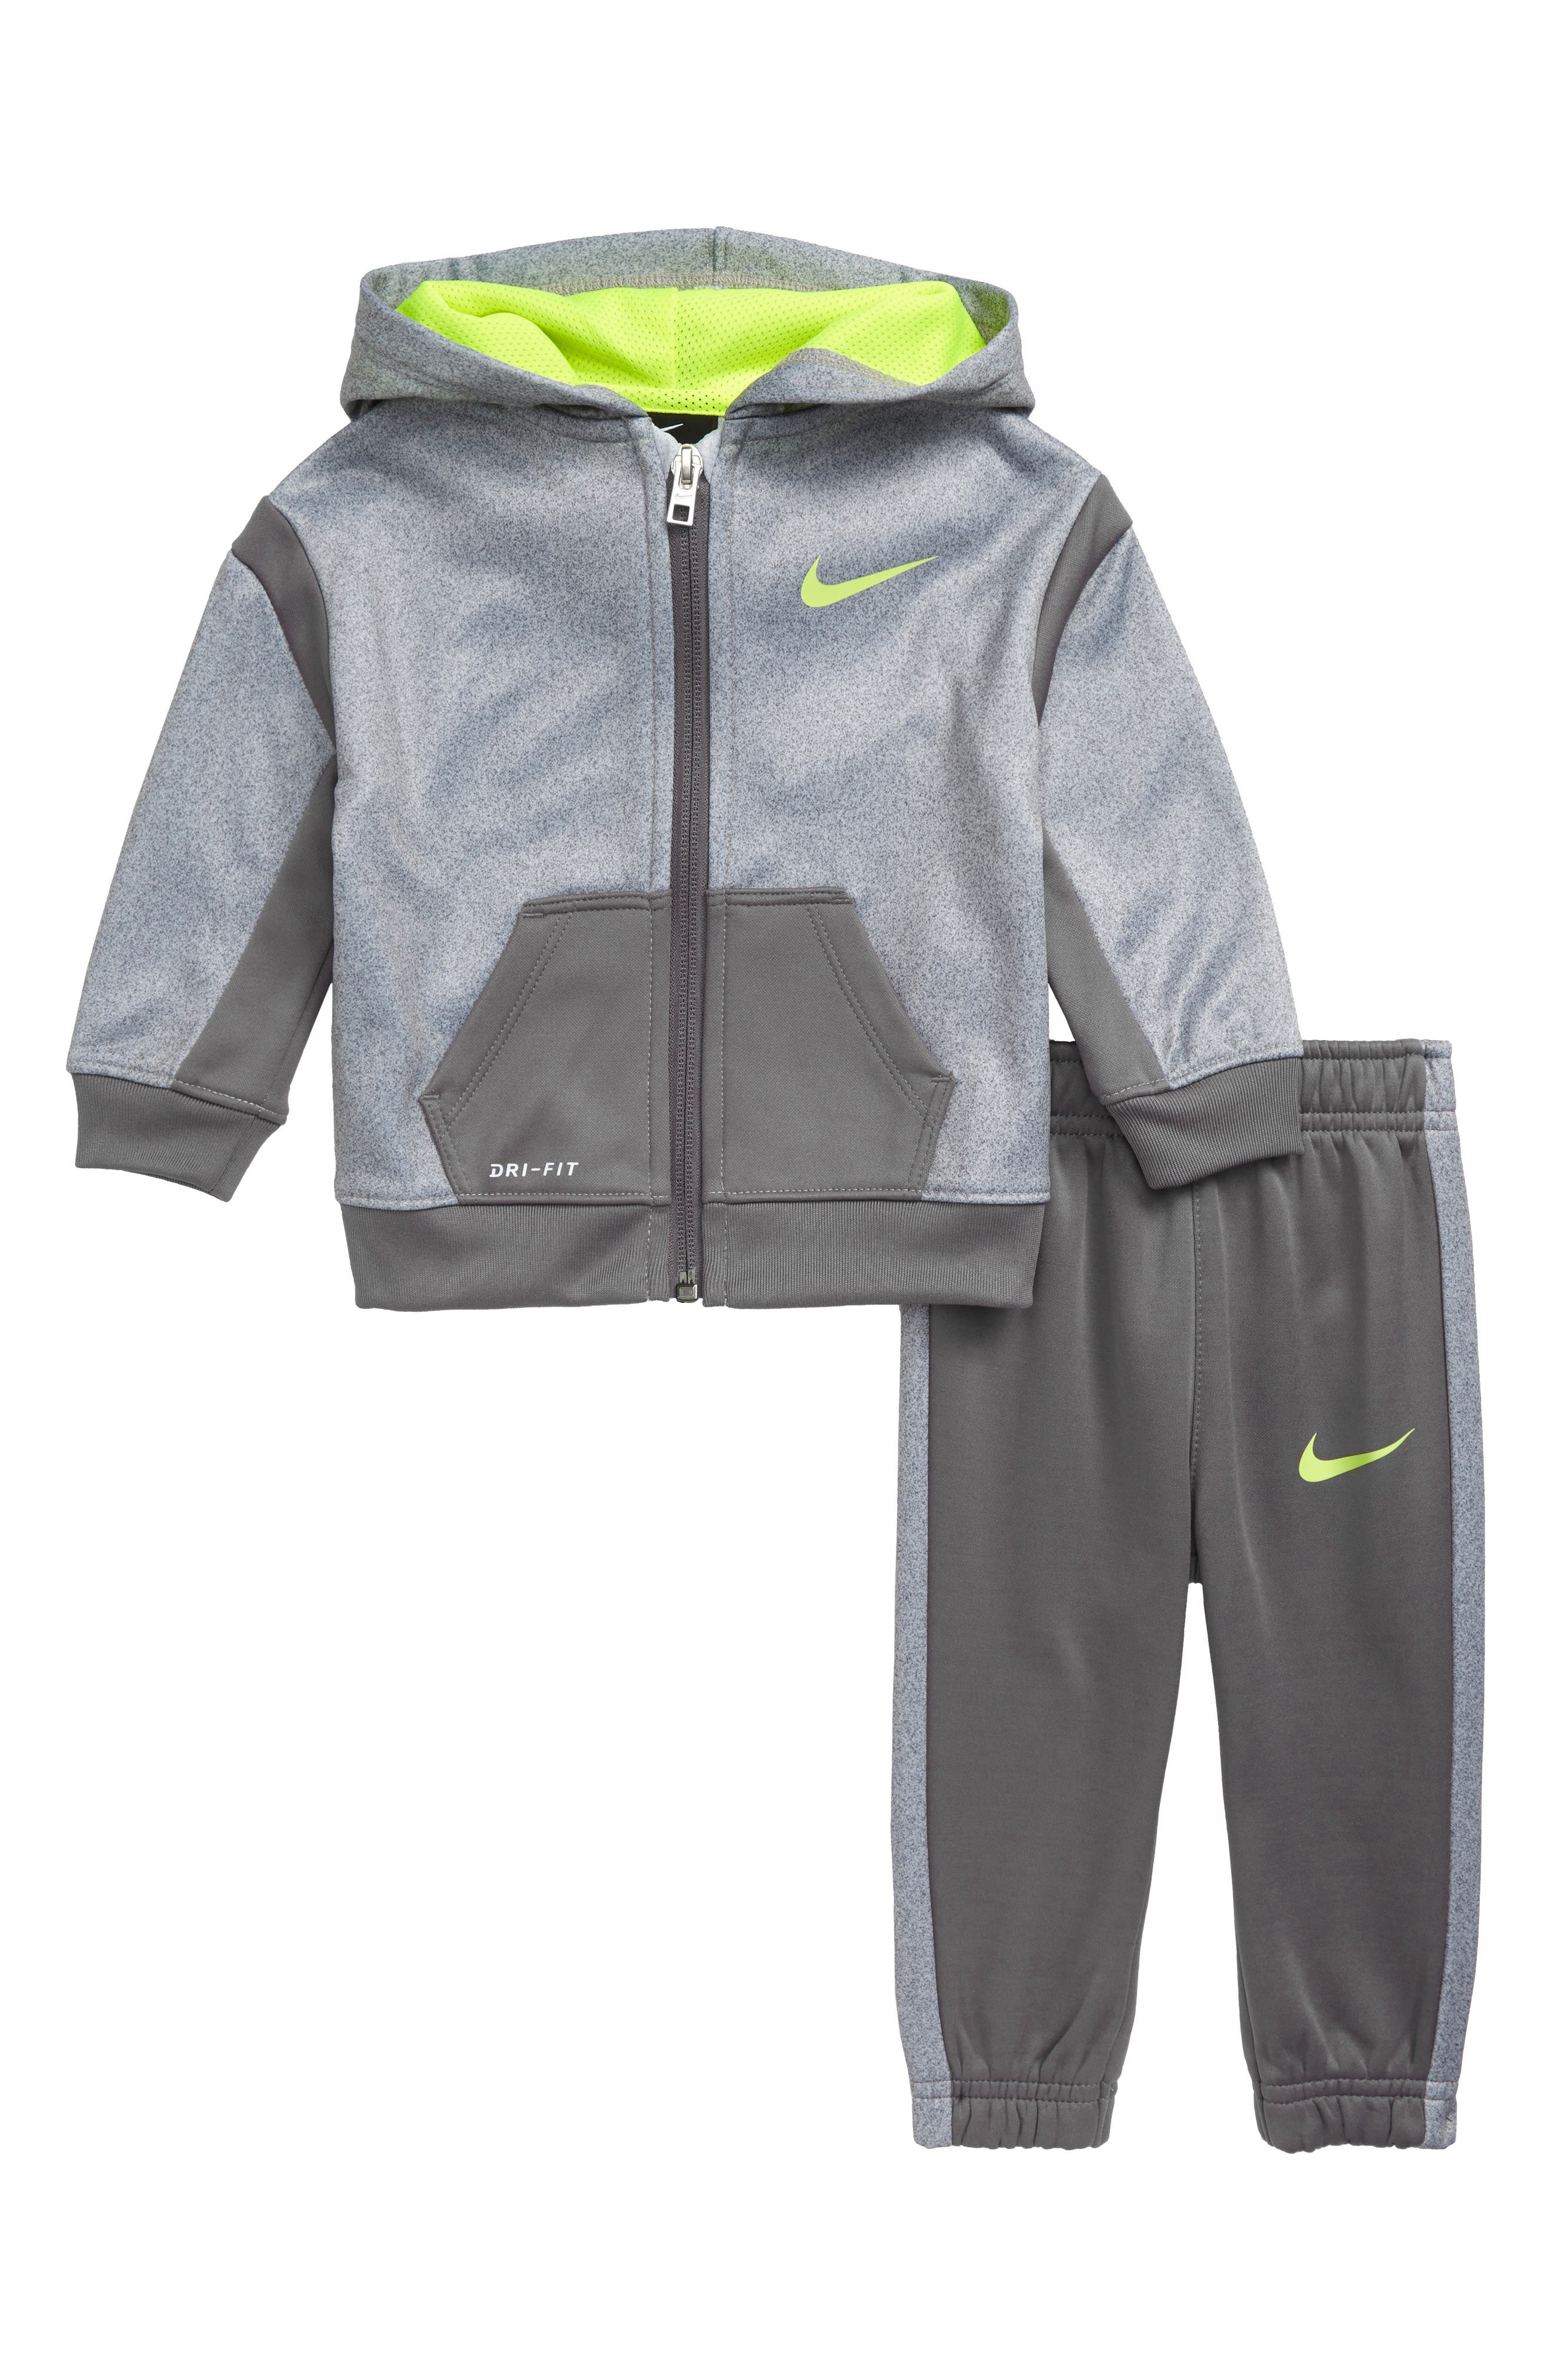 Infant Boys Nike Therma DriFit Speckle Colorblock Hoodie  Sweatpants Set